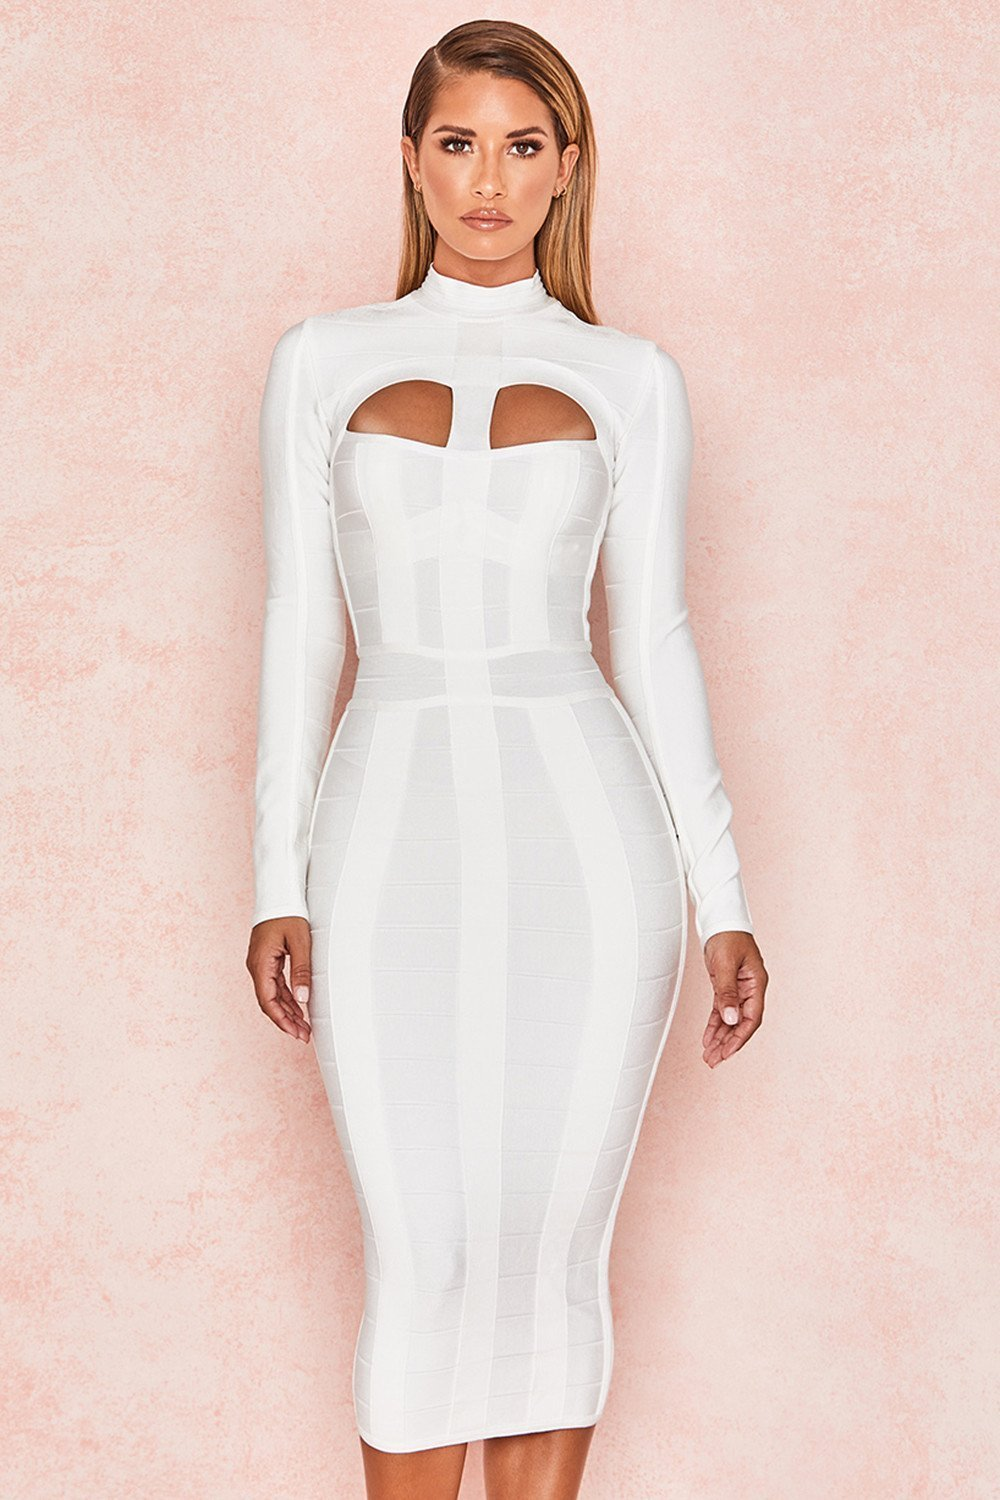 White Cut Out Long Sleeve Bandage Dress - Sale